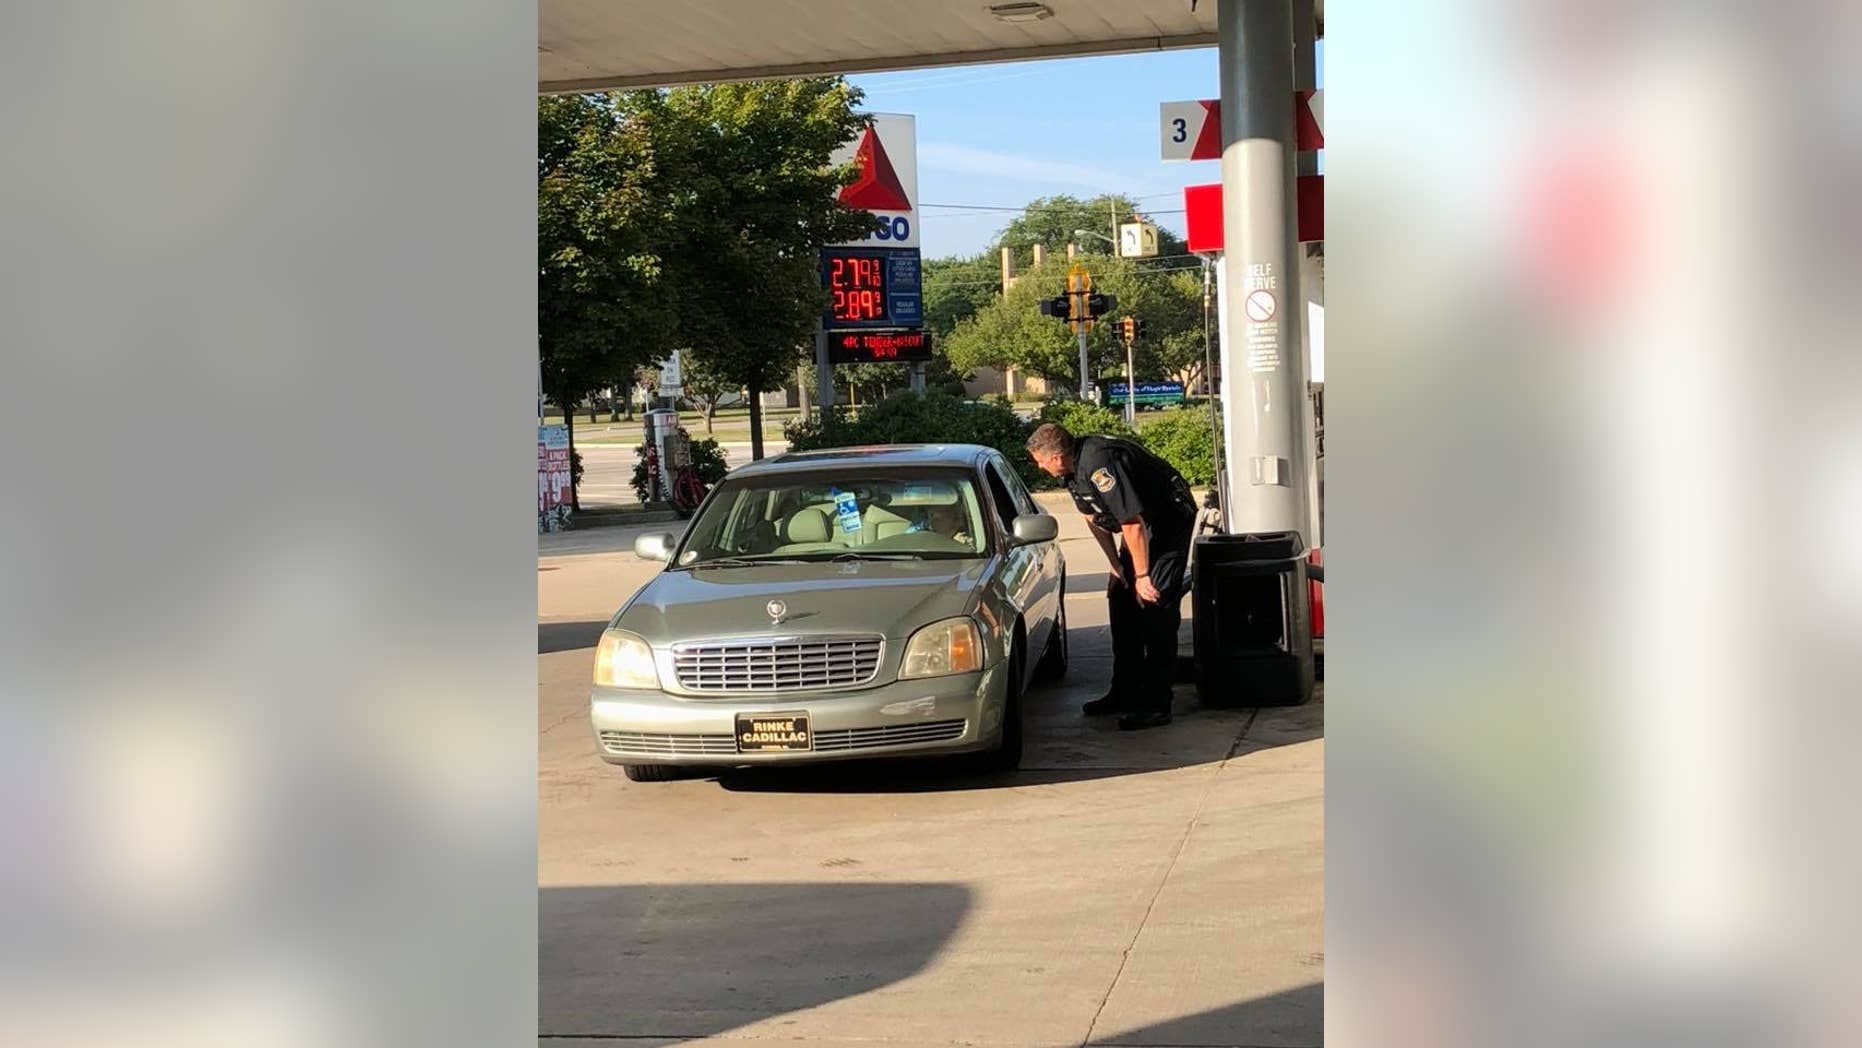 A now-viral Facebook post describes how a police officer helped out an elderly woman at a gas station last week.